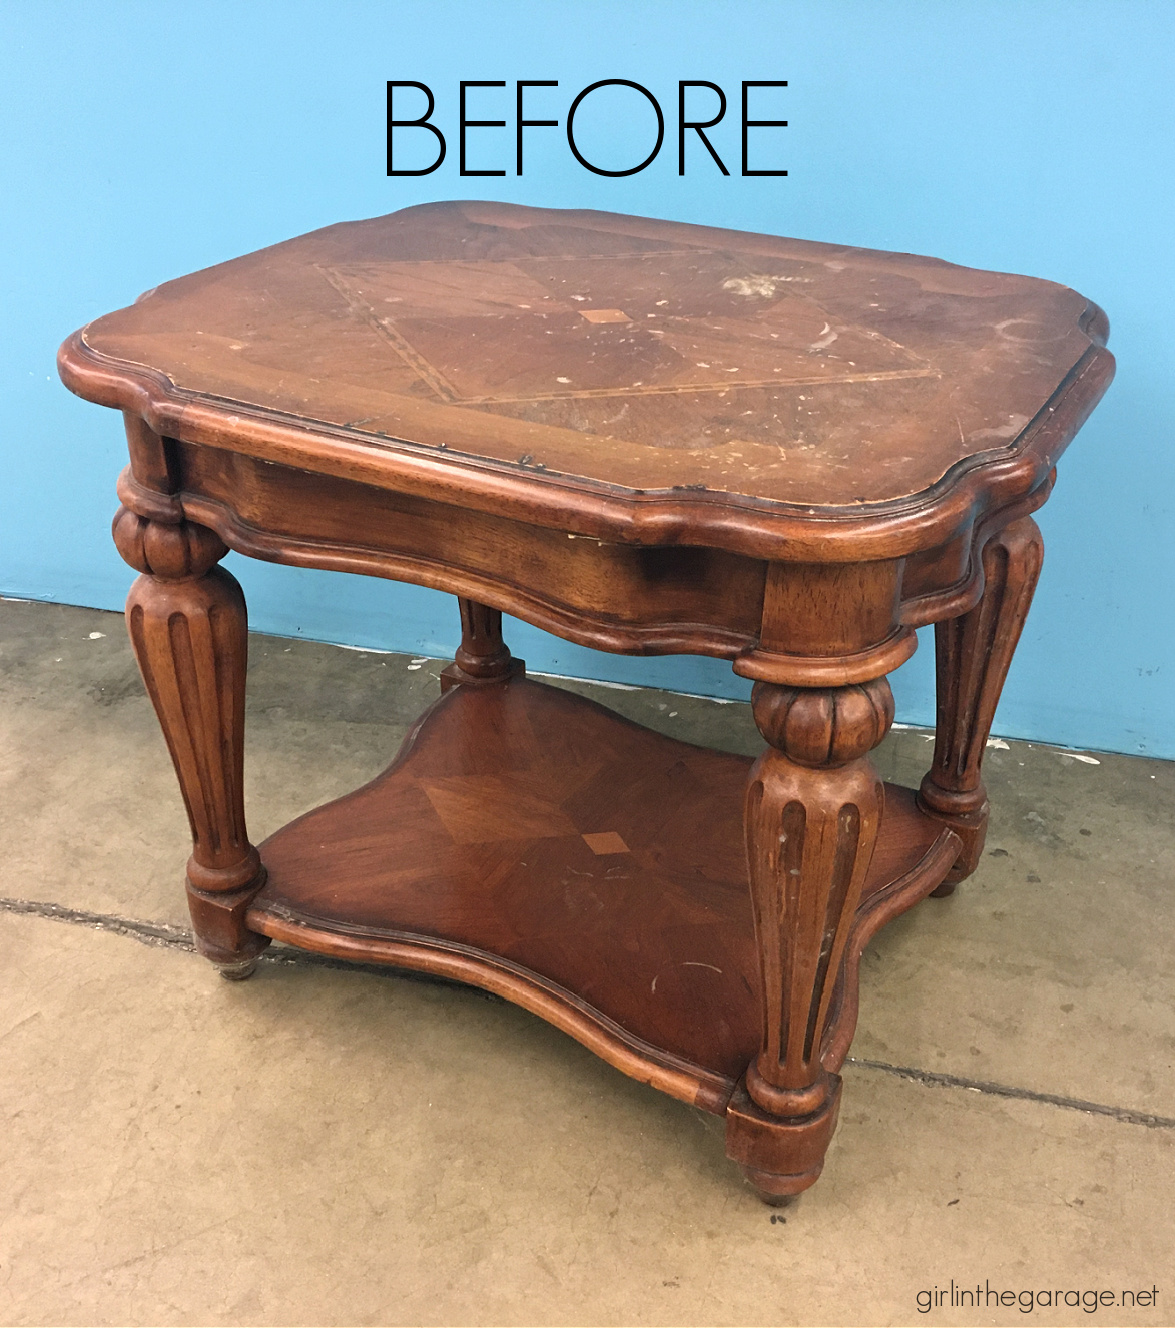 Thrifted table makeover painted in a driftwood finish with Chalk Paint - Painted furniture ideas by Girl in the Garage